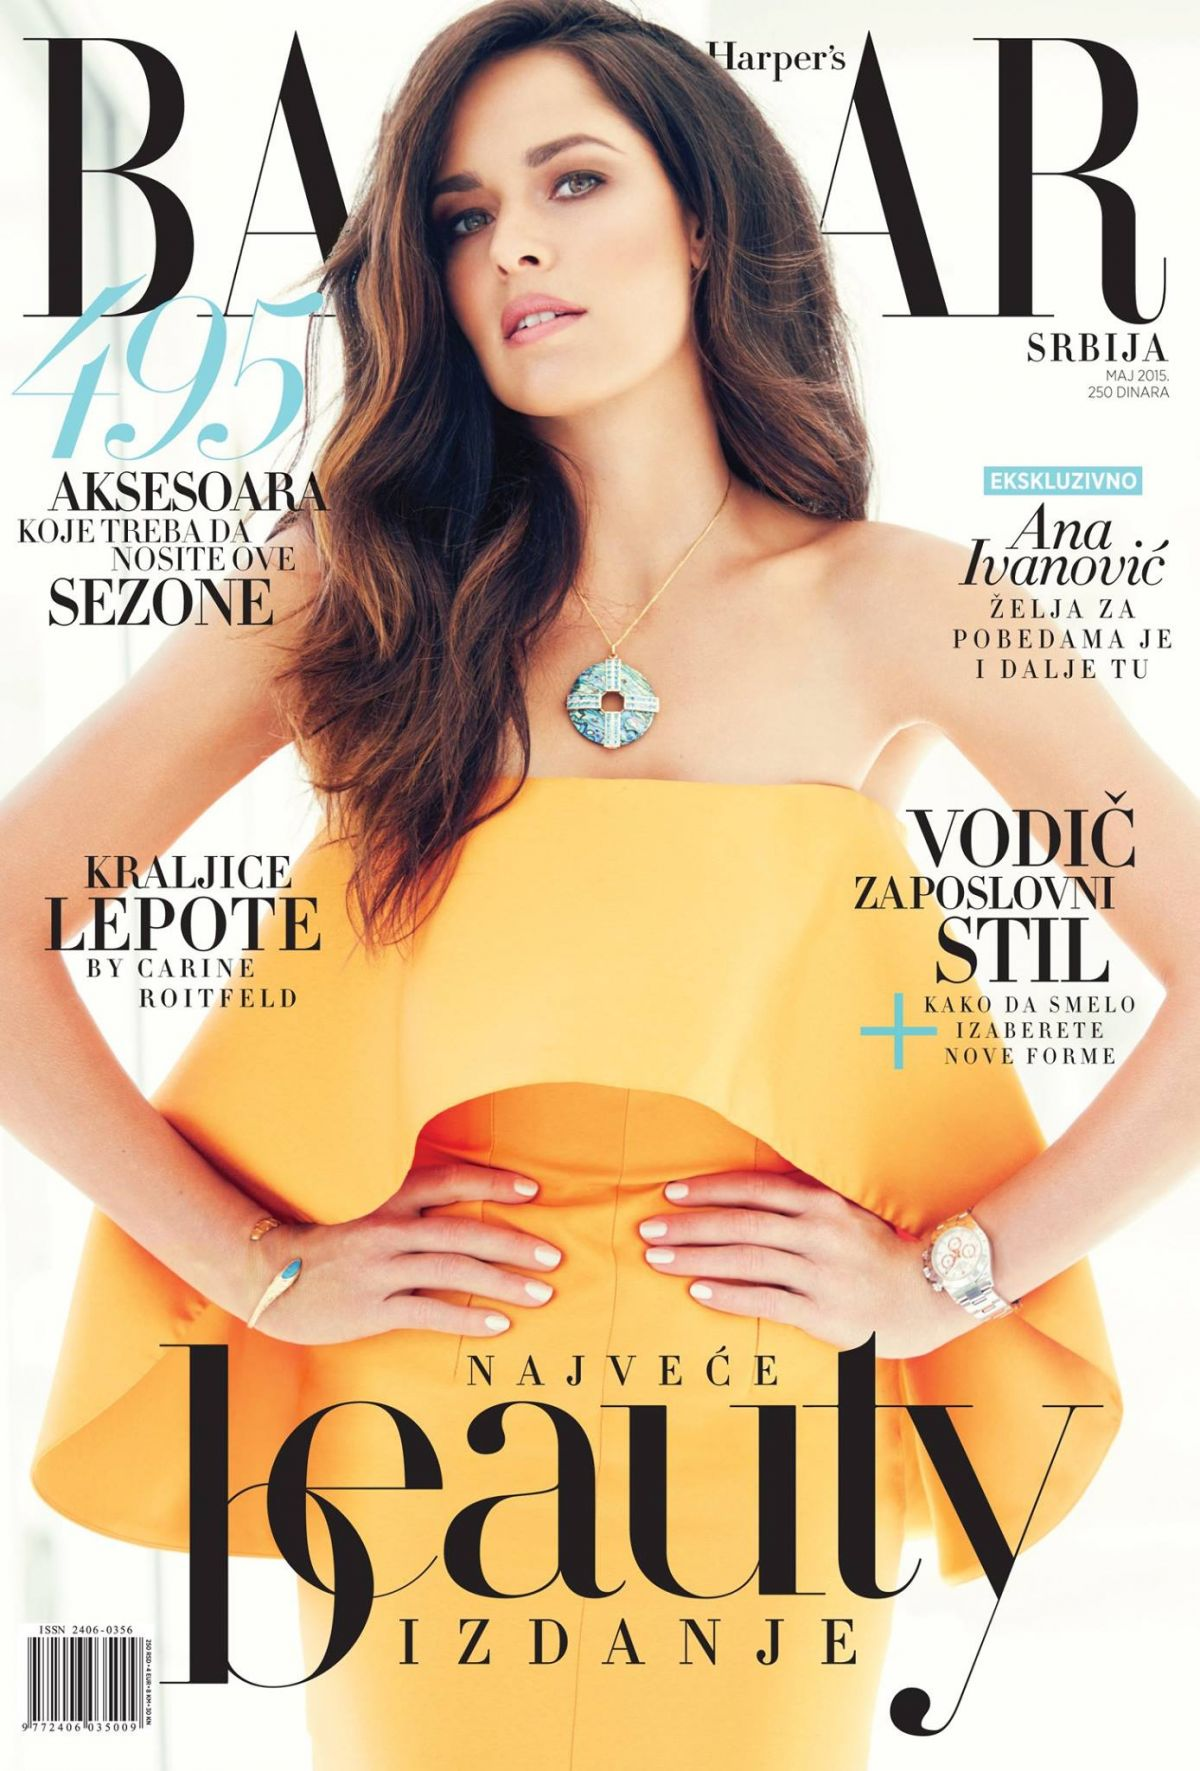 ANA IVANOVIC on the Cover of Harper